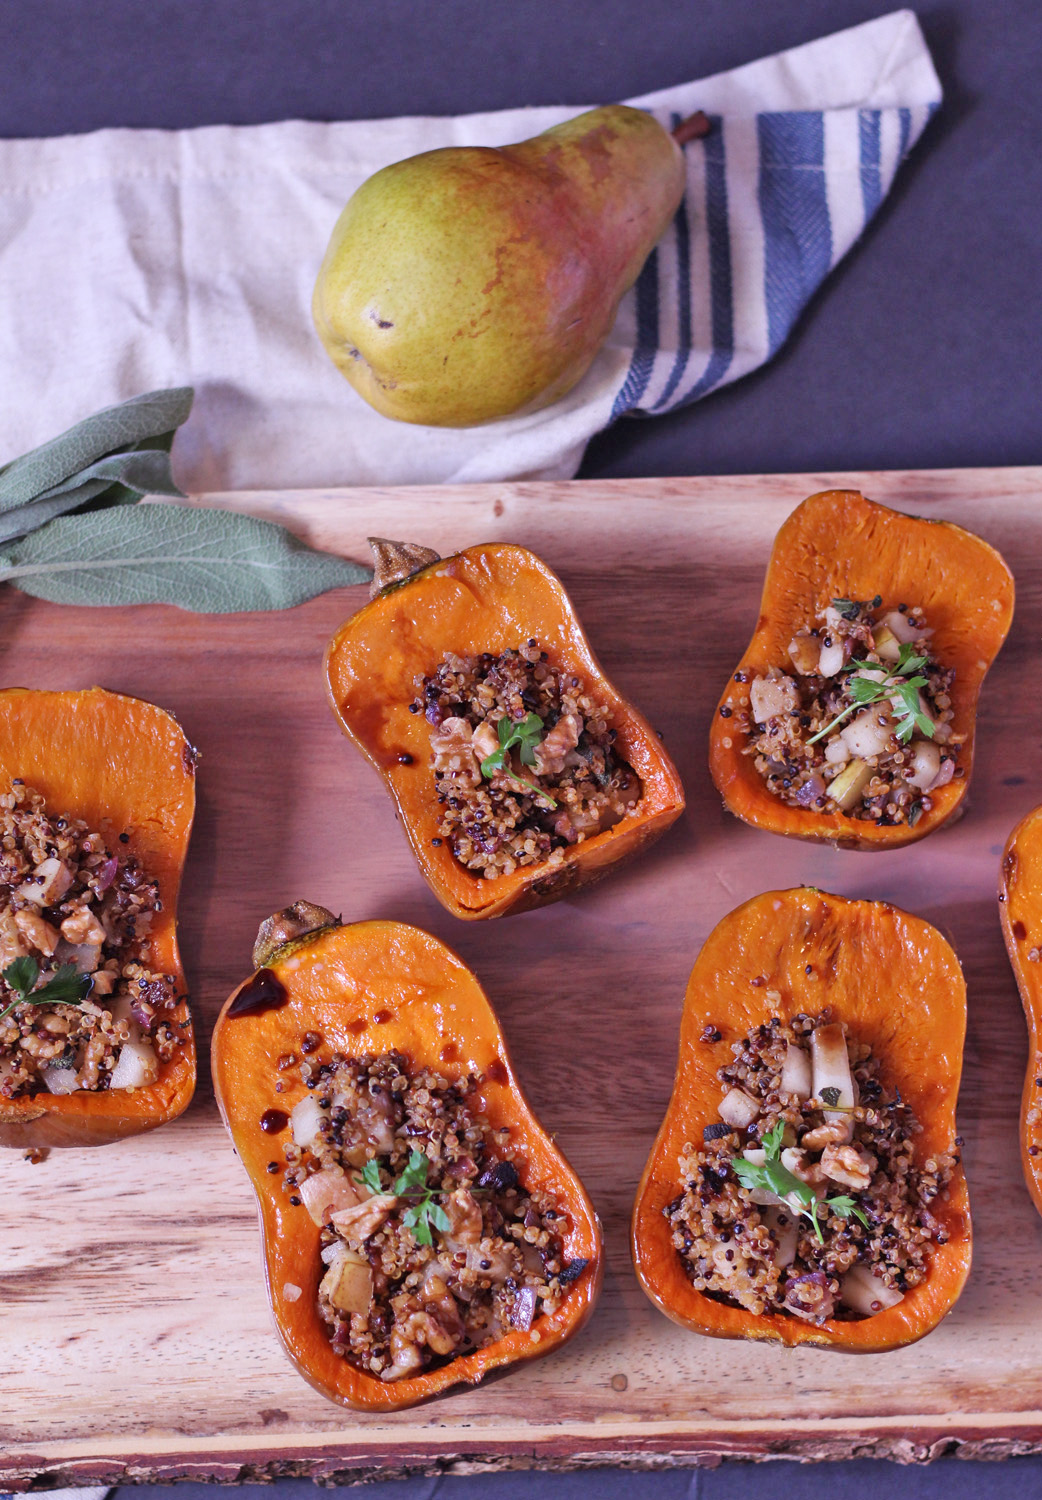 This stuffed butternut squash with a quinoa pear filling is a unique and filling main dish for Thanksgiving.